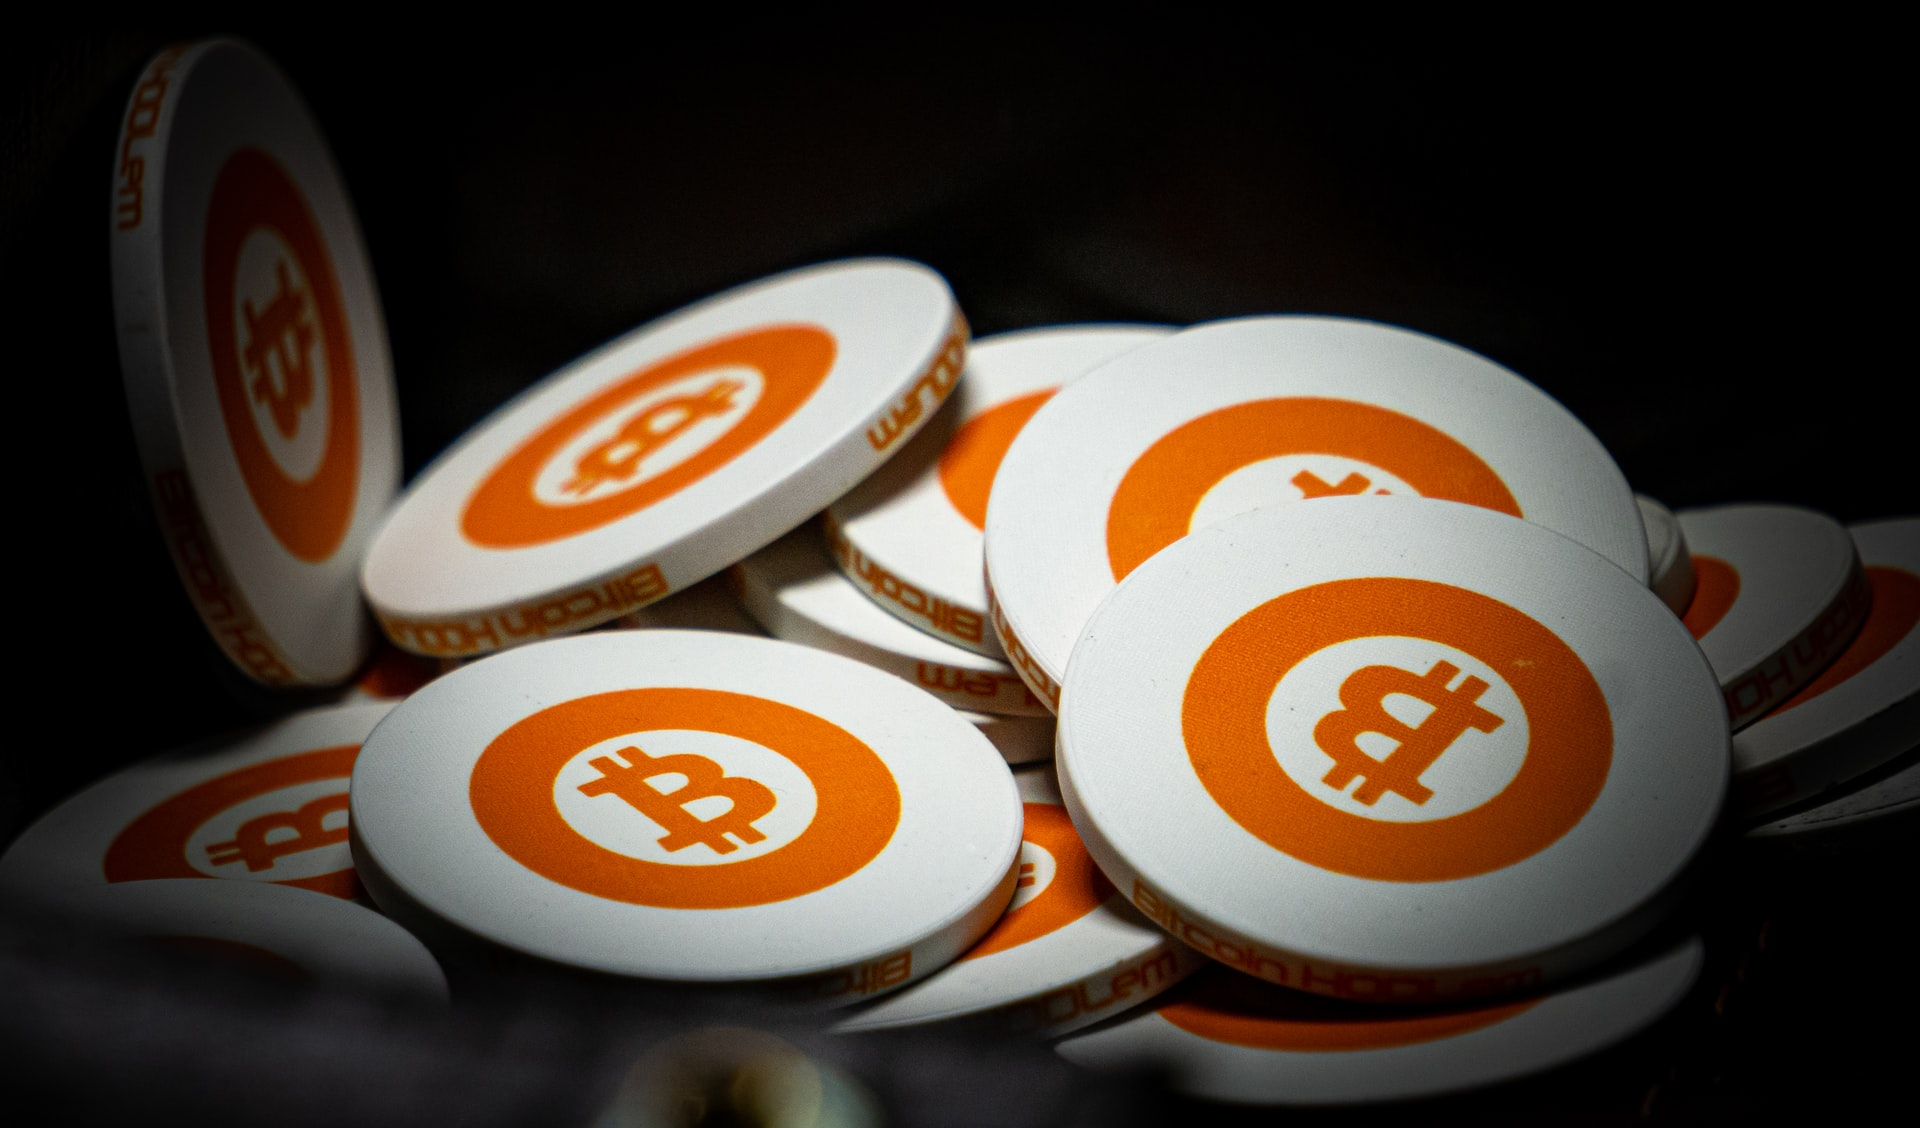 An image of white and orange bitcoins